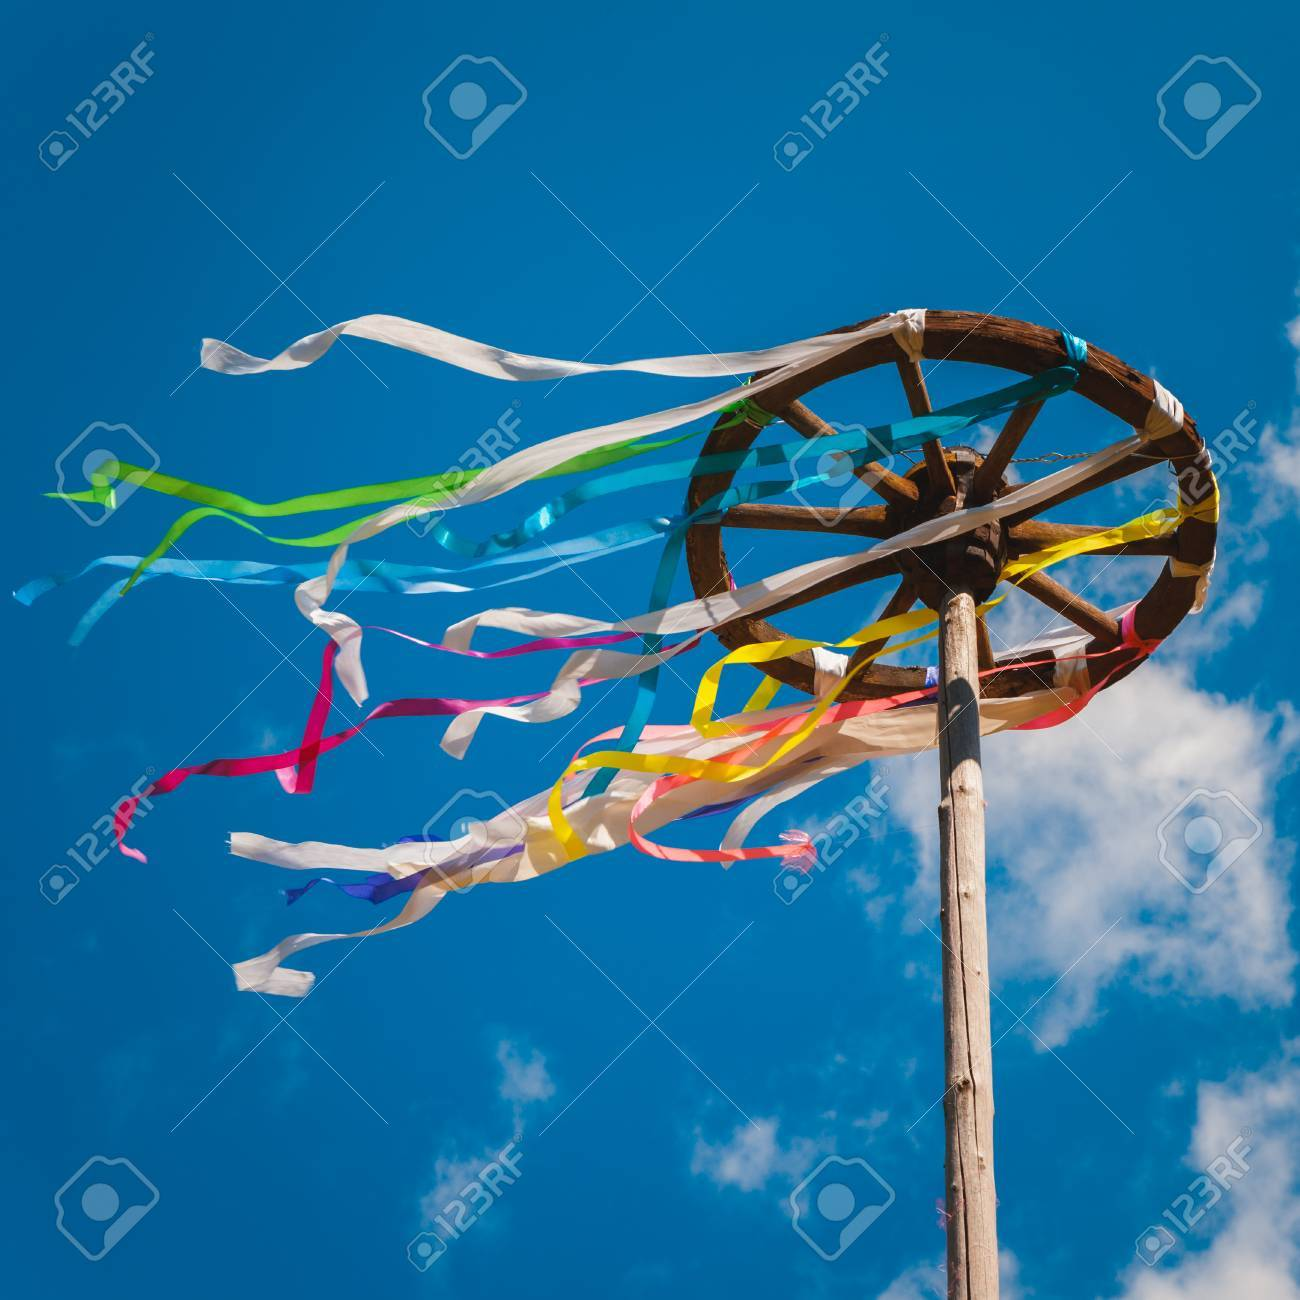 Wooden wheel with bright ribbons on blue sky background. Slavic celebration of Midsummer Stock Photo - 29839103